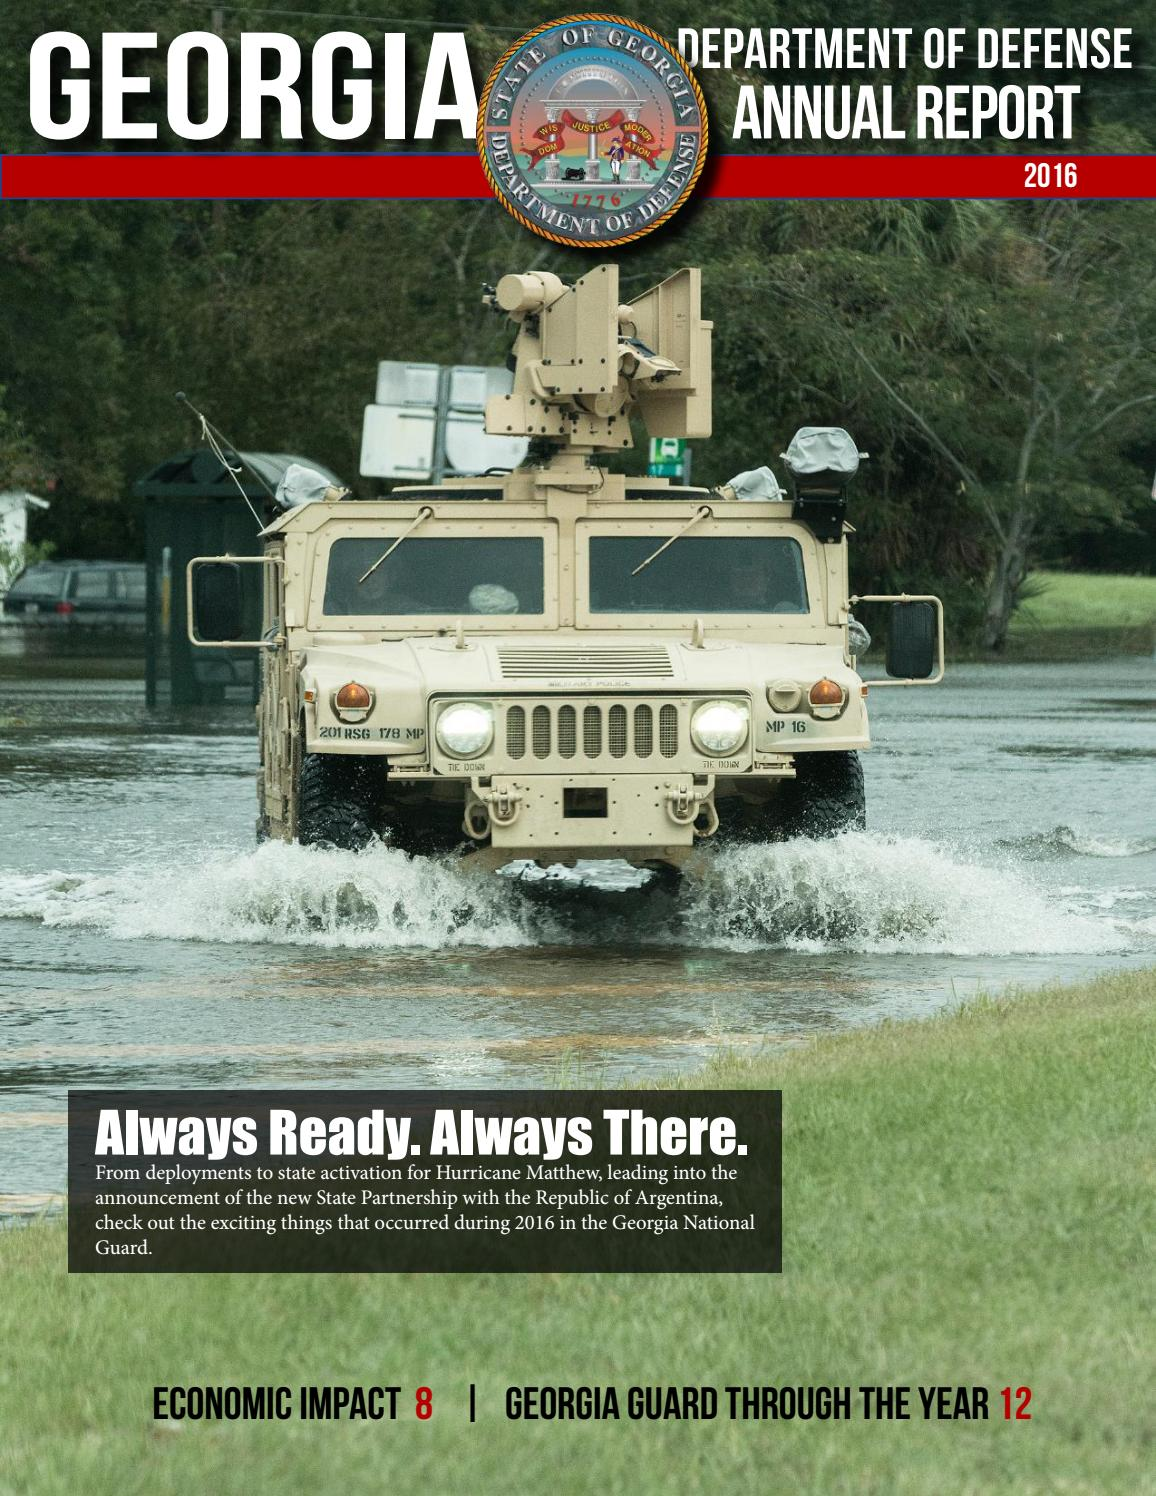 Annual Report 2016 by Georgia National Guard - issuu